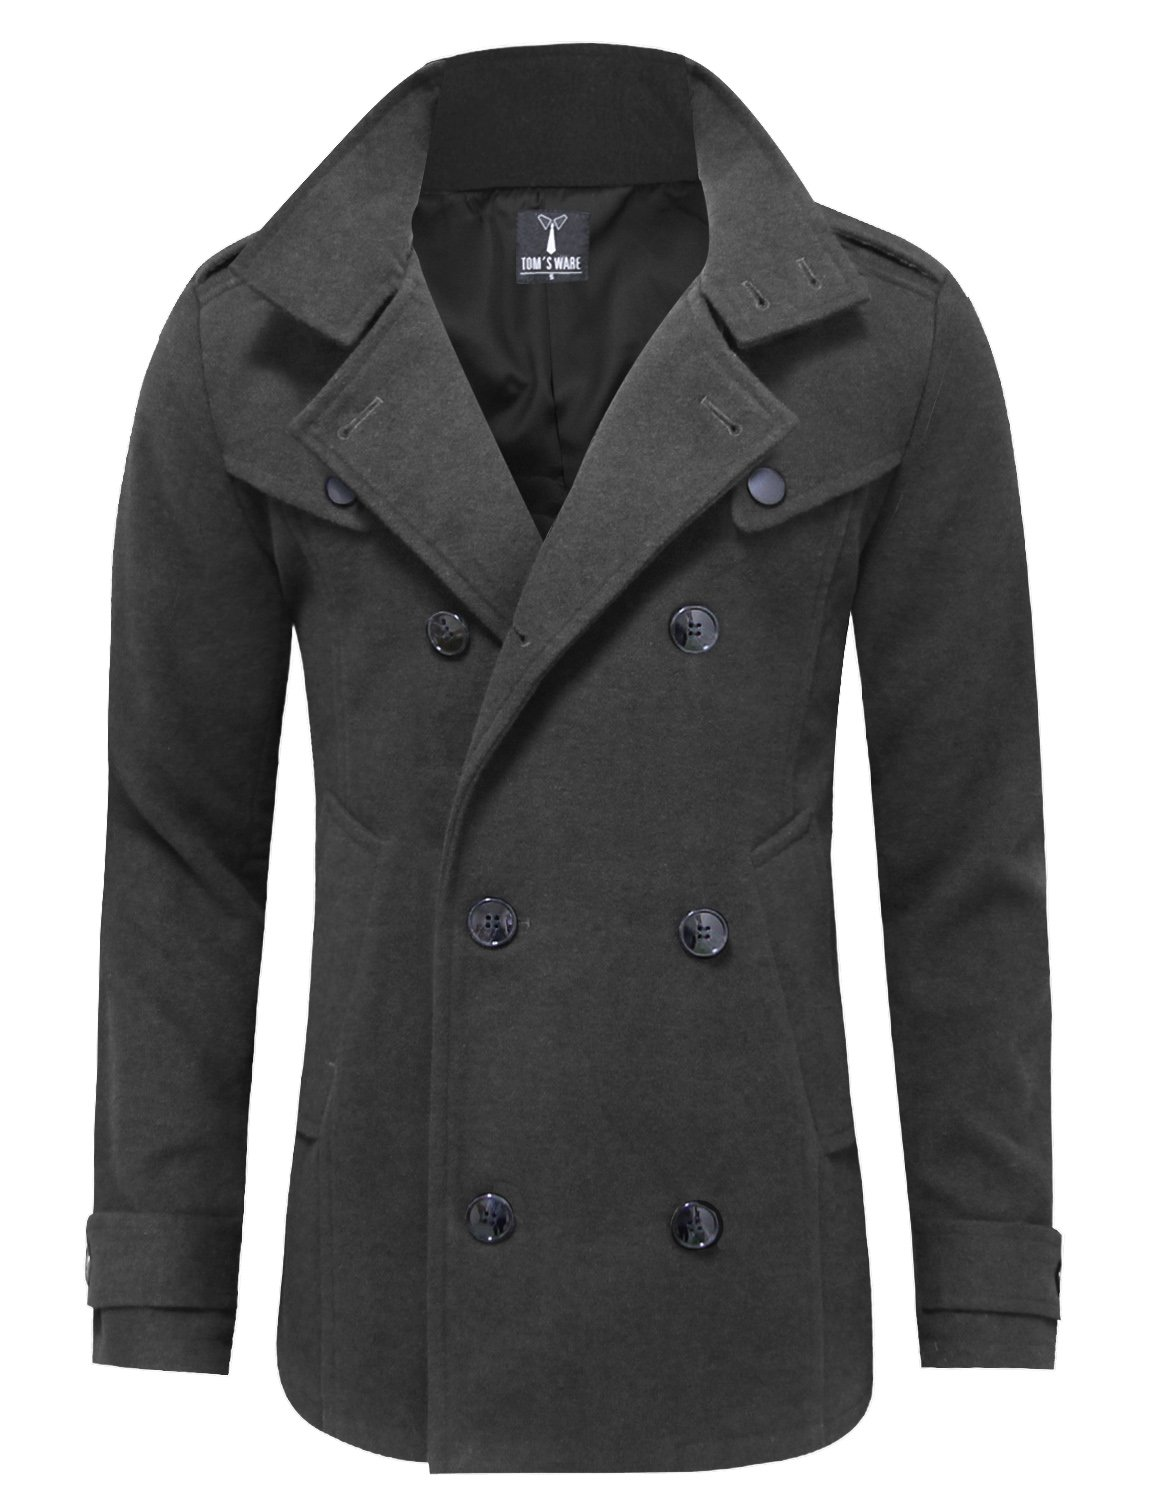 Tom's Ware Mens Stylish Fashion Classic Wool Double Breasted Pea Coat TWCC06-CHARCOAL-US L by Tom's Ware